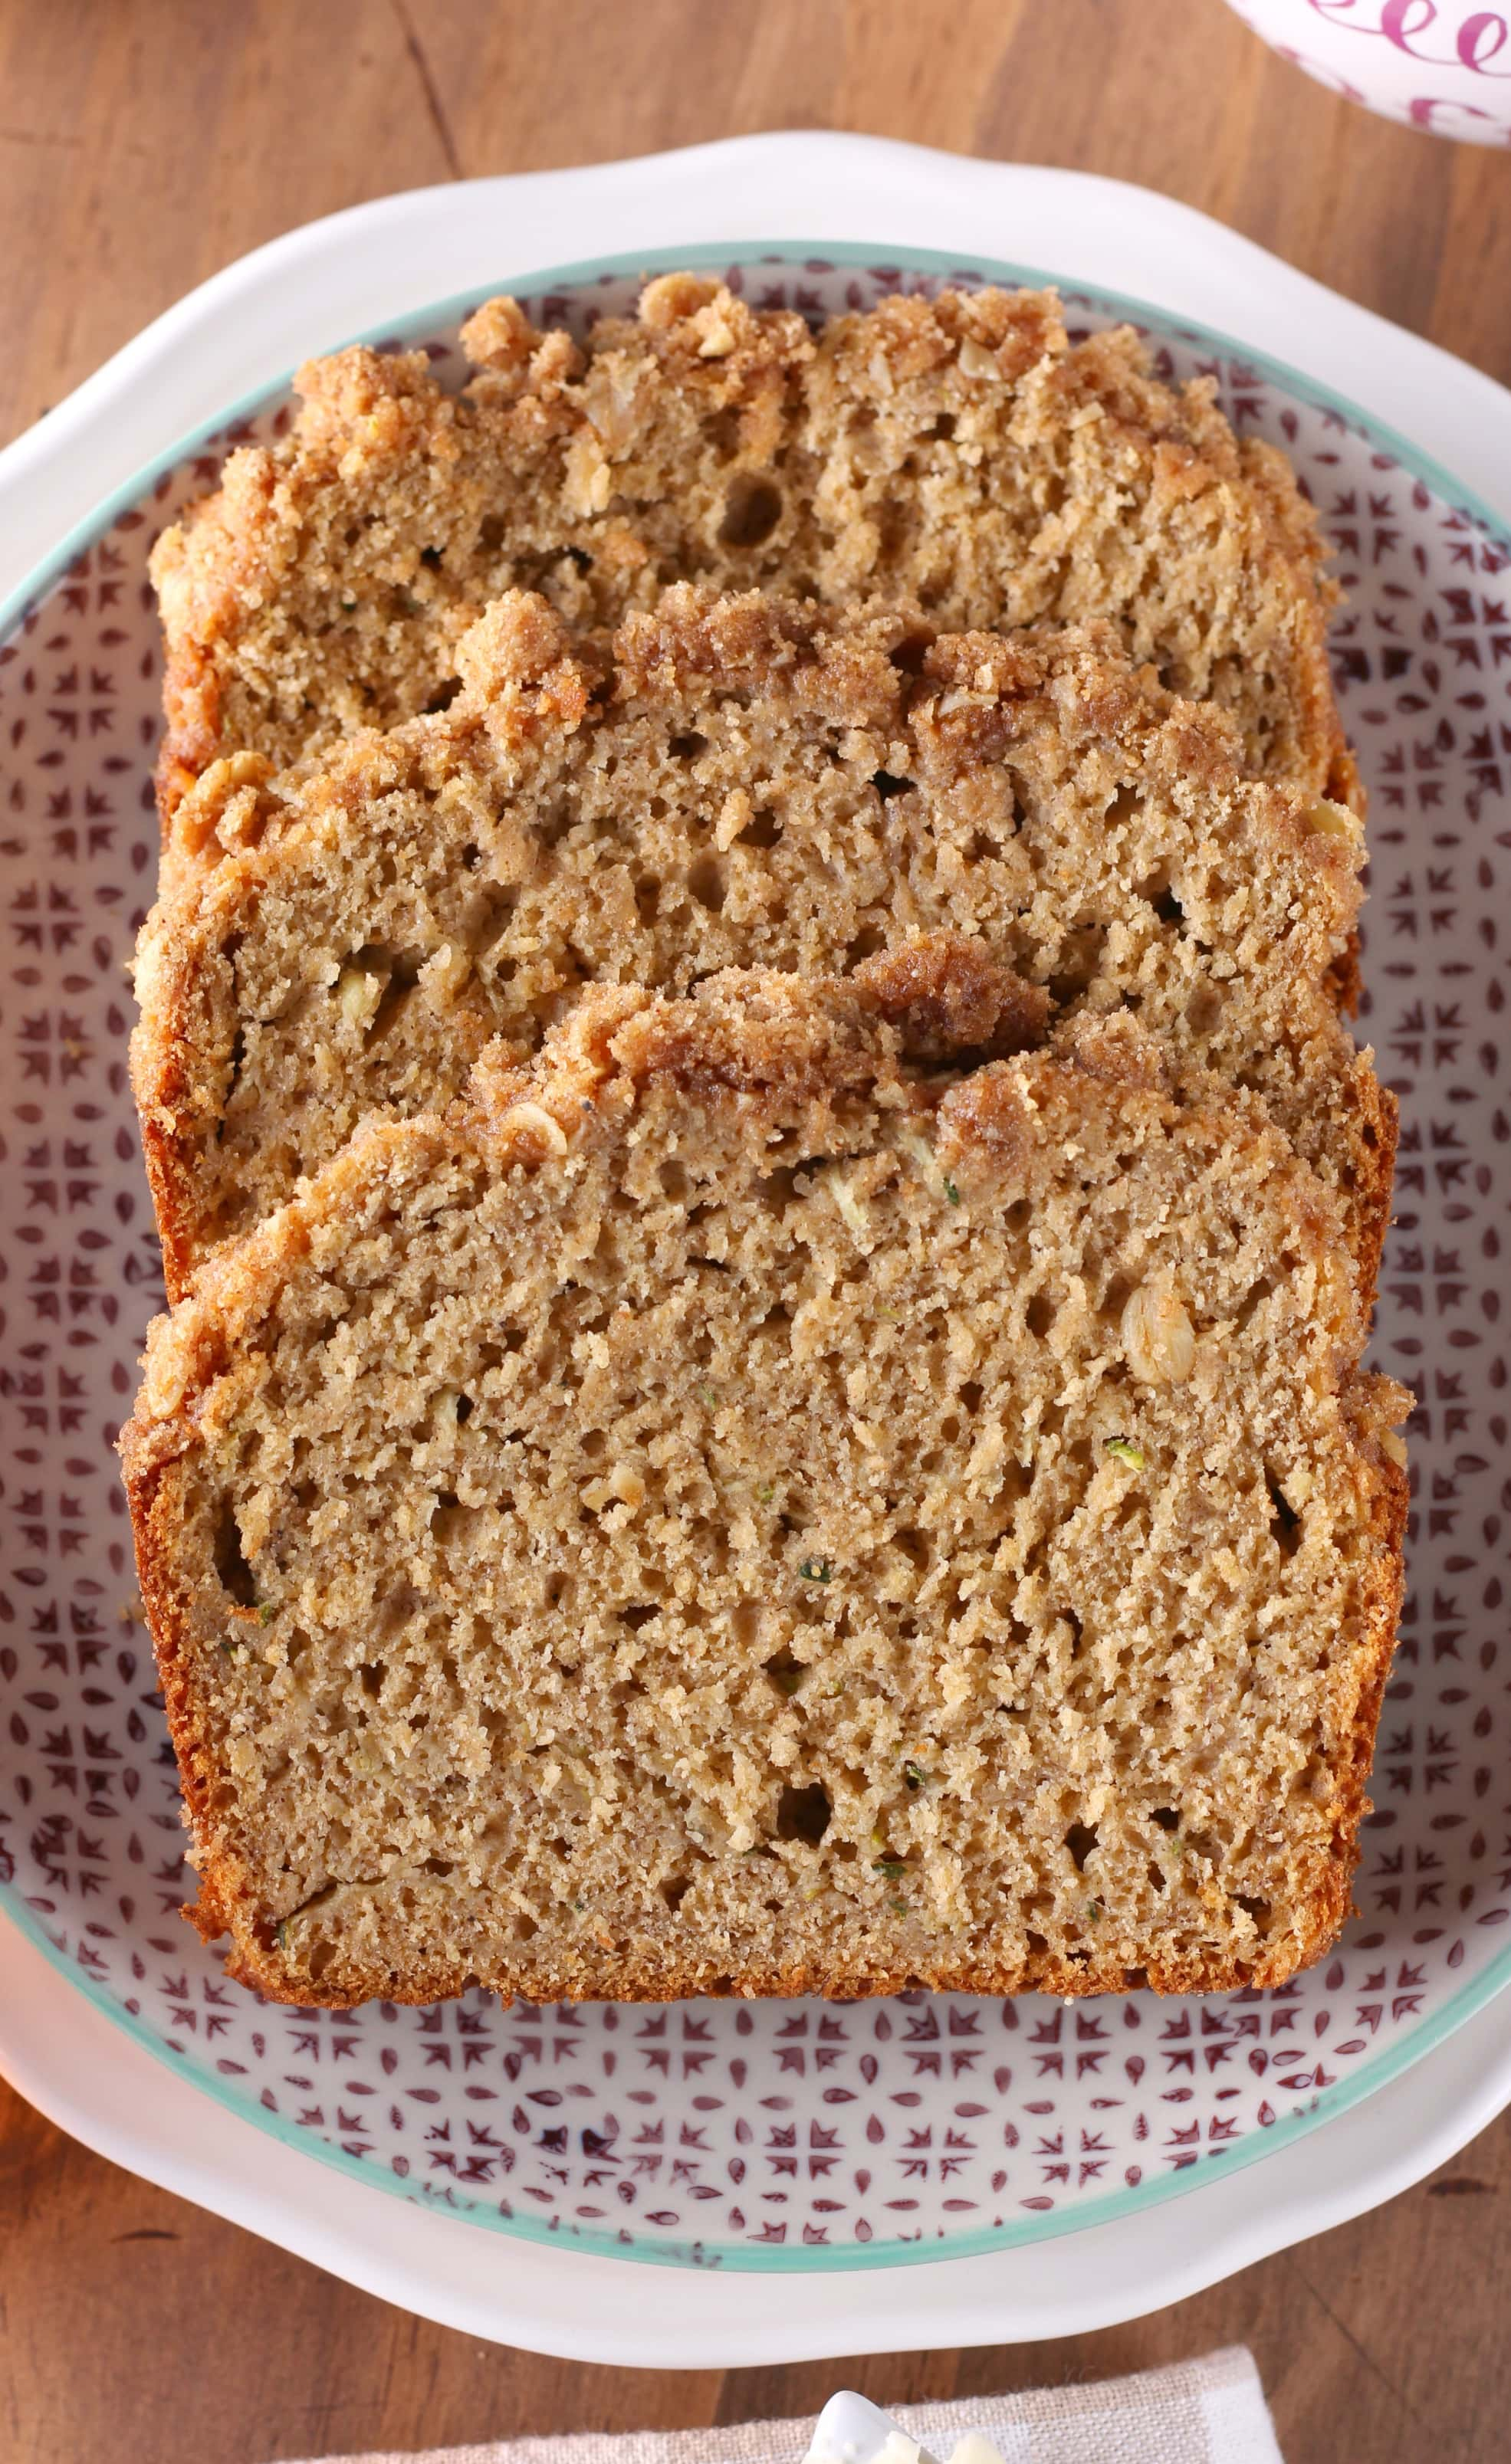 Cinnamon Streusel Zucchini Banana Quick Bread Recipe from A Kitchen Addiction